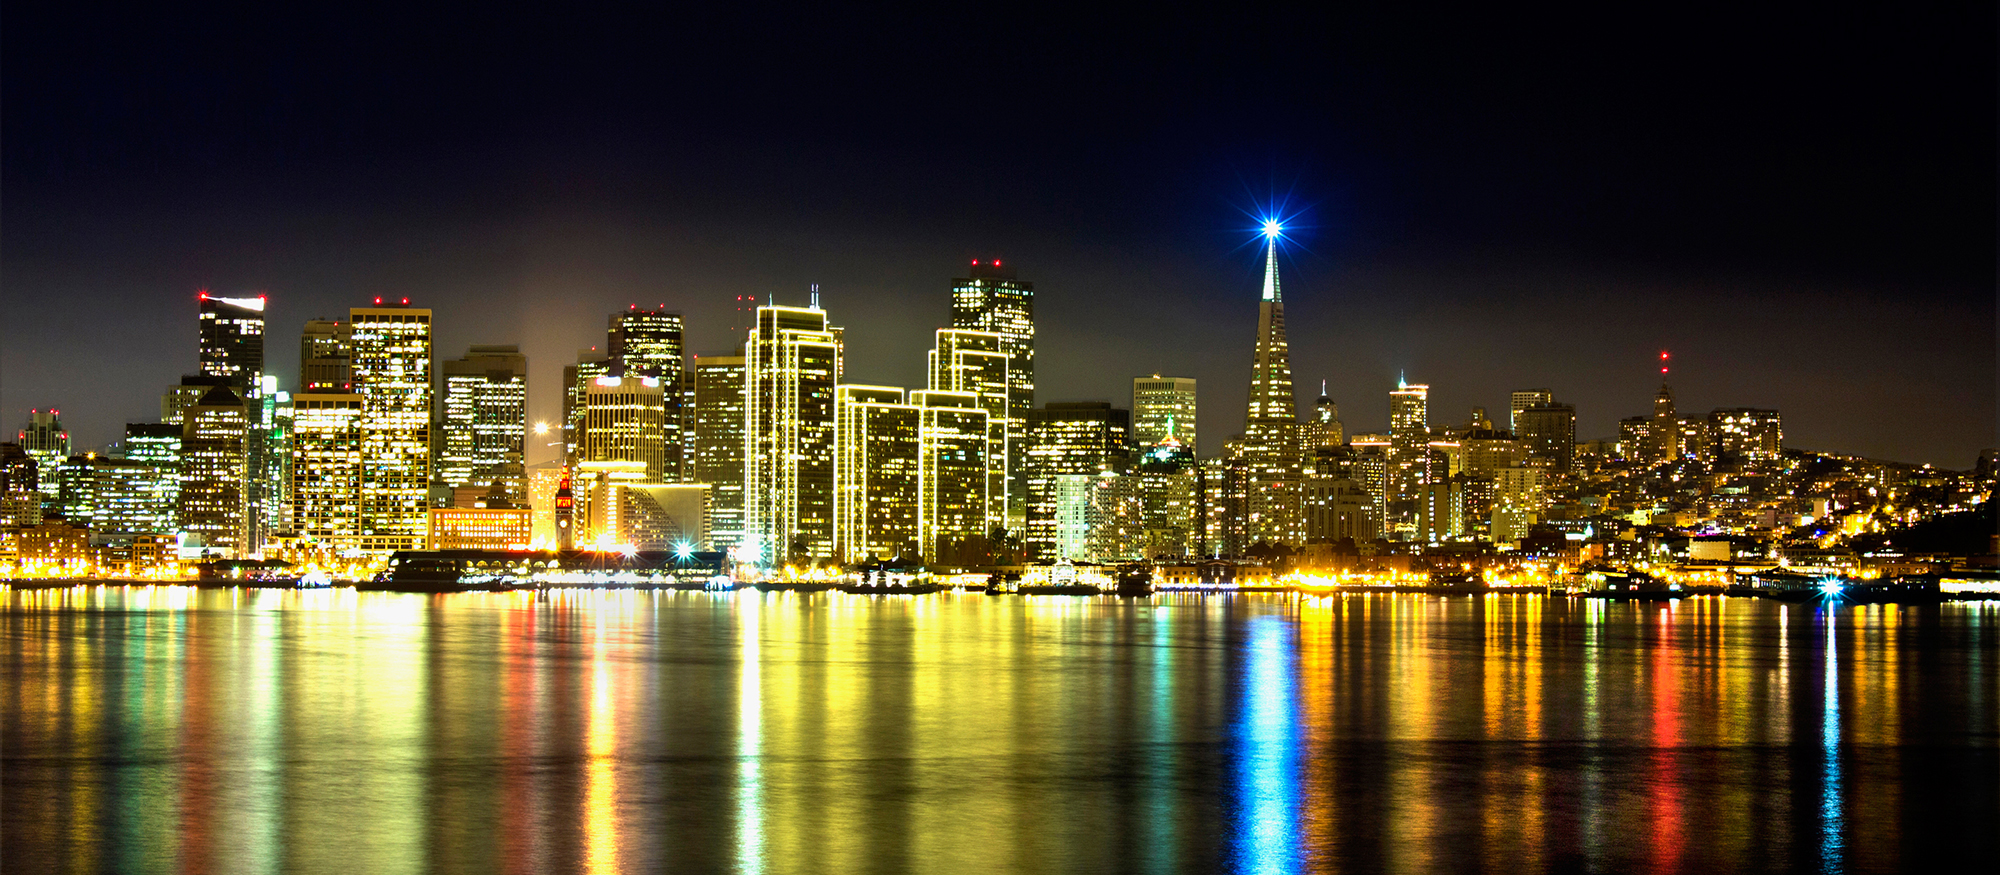 San-Francisco-Skyline-HD-Wallpaper